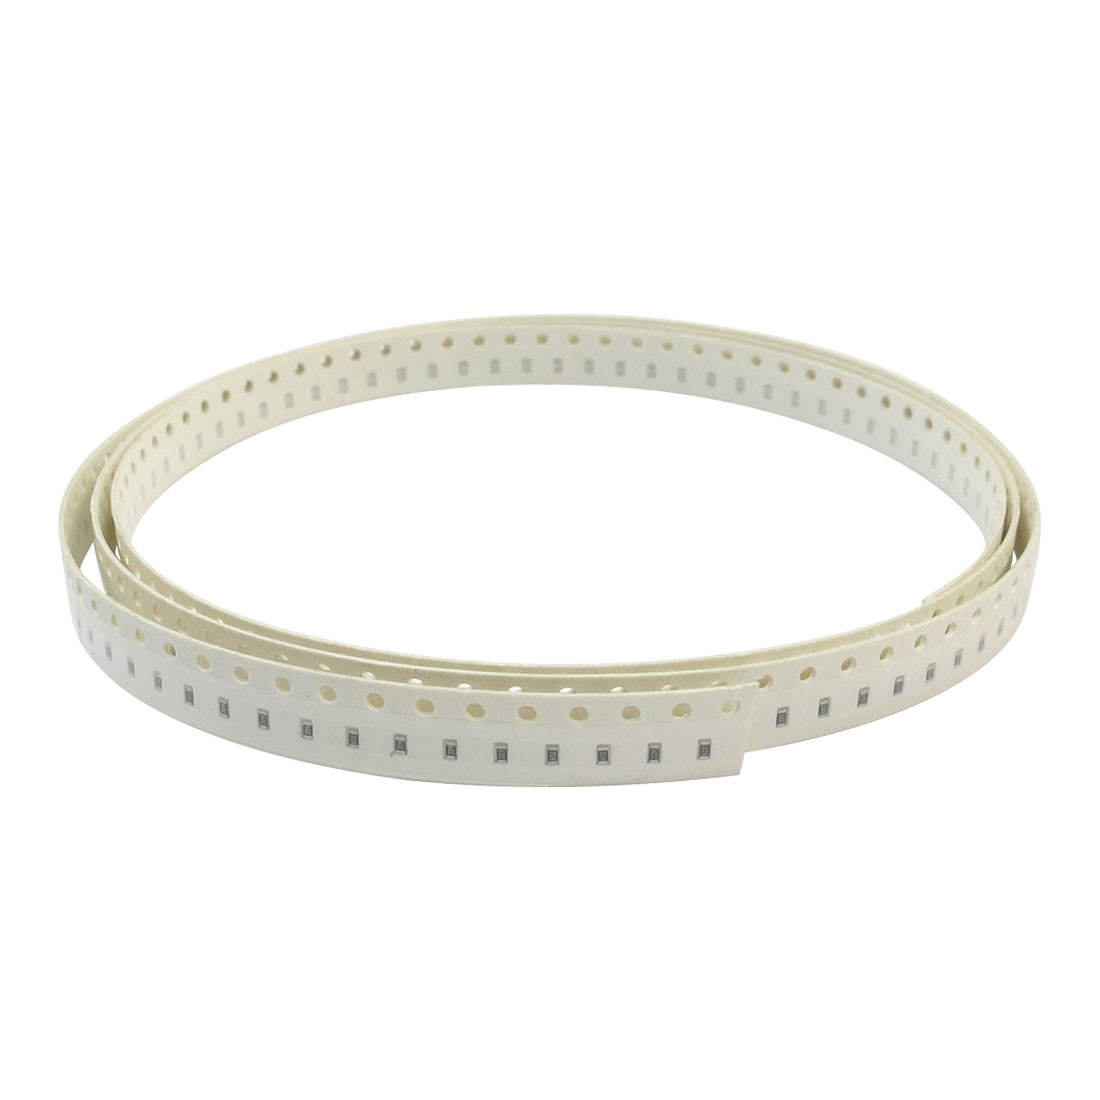 200 Pcs 0603 1608 15K Ohm Resistance 1/16W Watt 5% Tolerance Surface Mounted SMT SMD Chip Fixed Resistors Strip